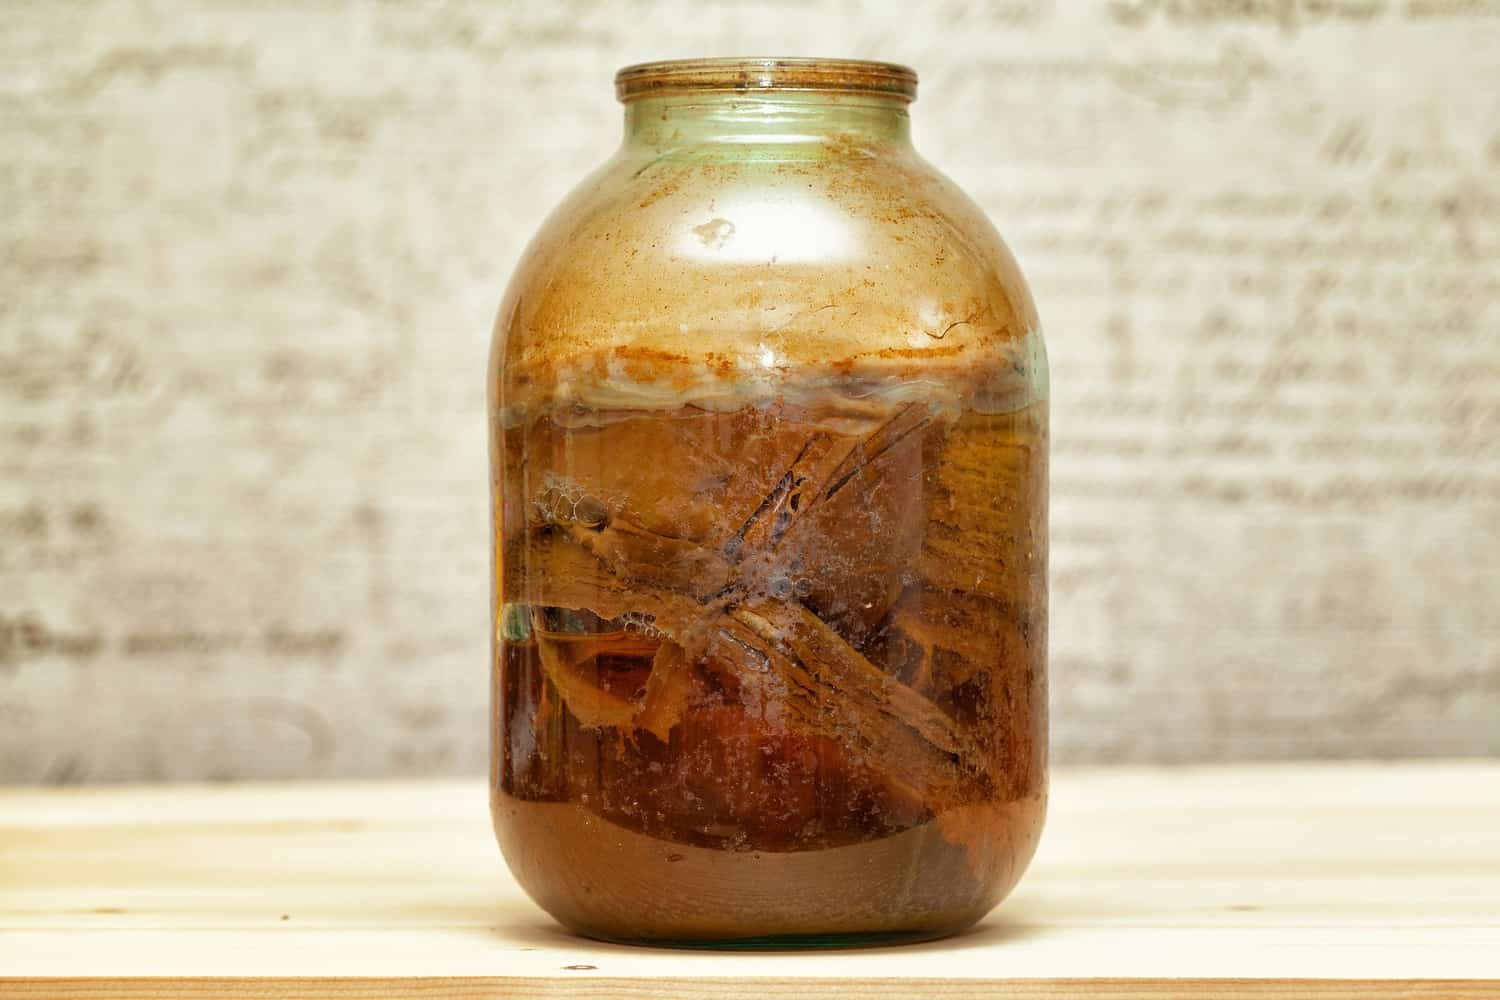 Kombucha with scoby.